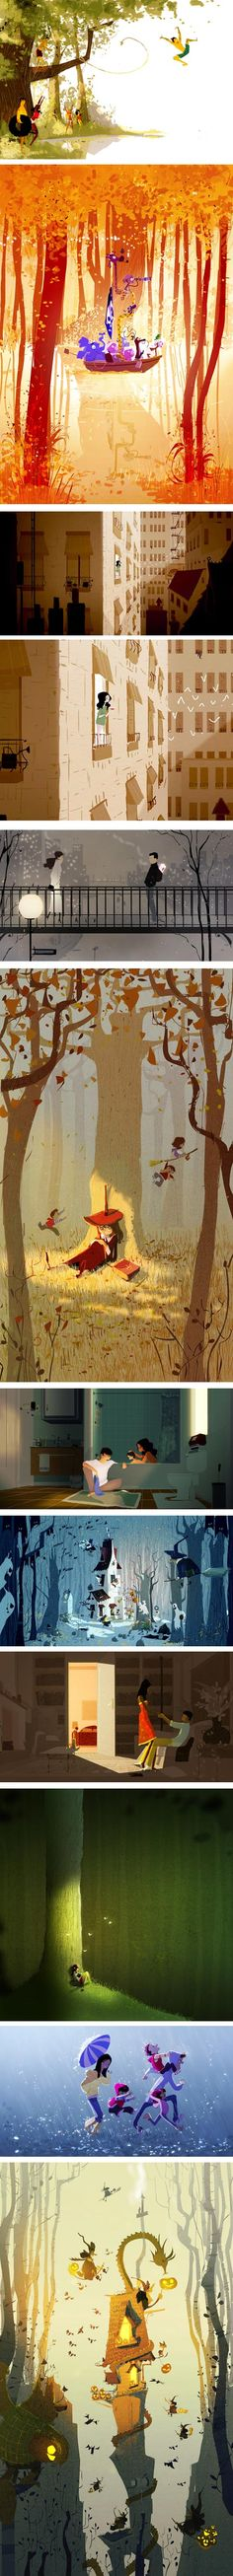 Pascal Campion. Really beautiful story telling through dynamic illustrations.